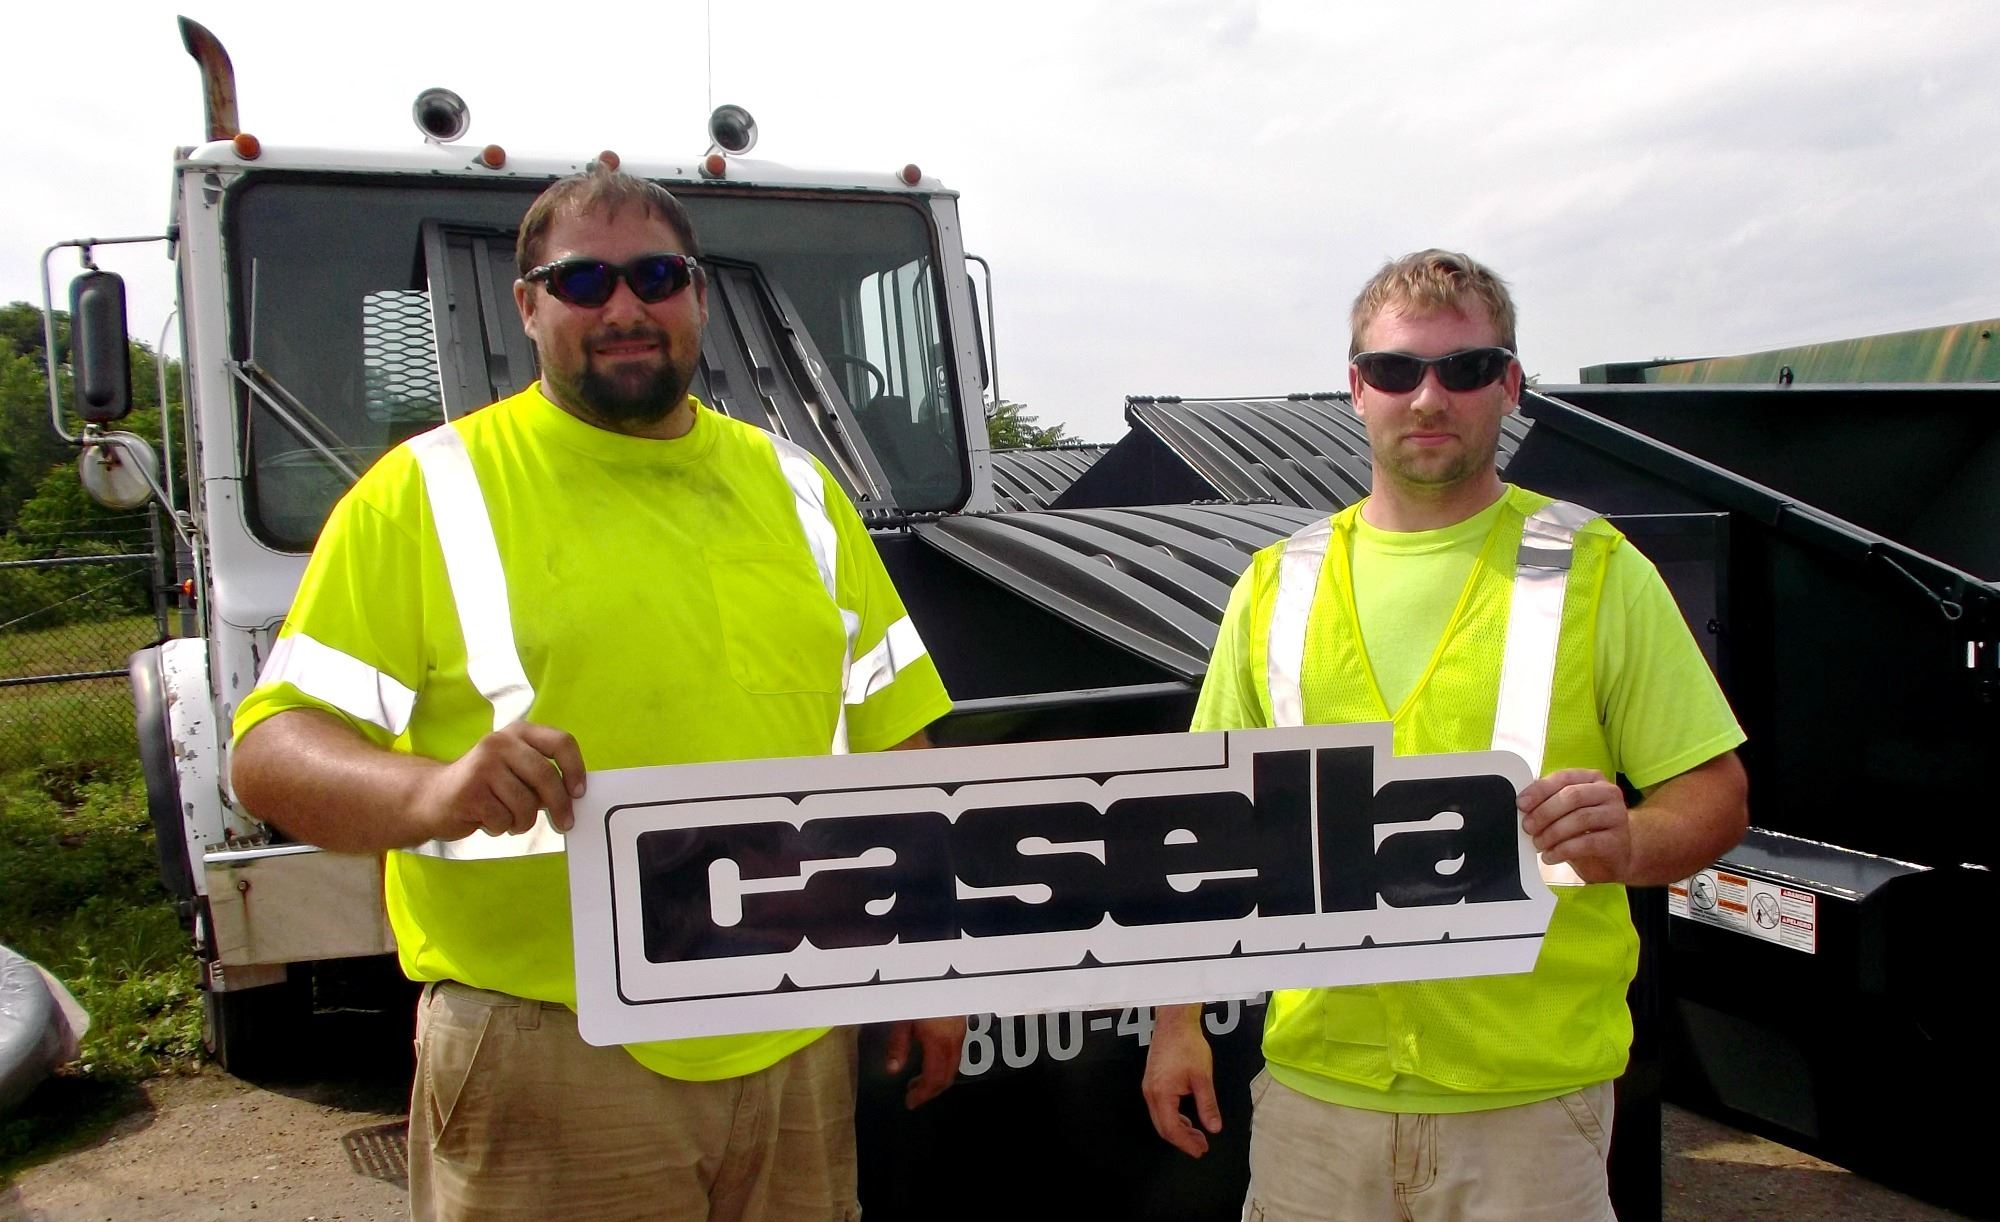 Men Posing with Casella Sign